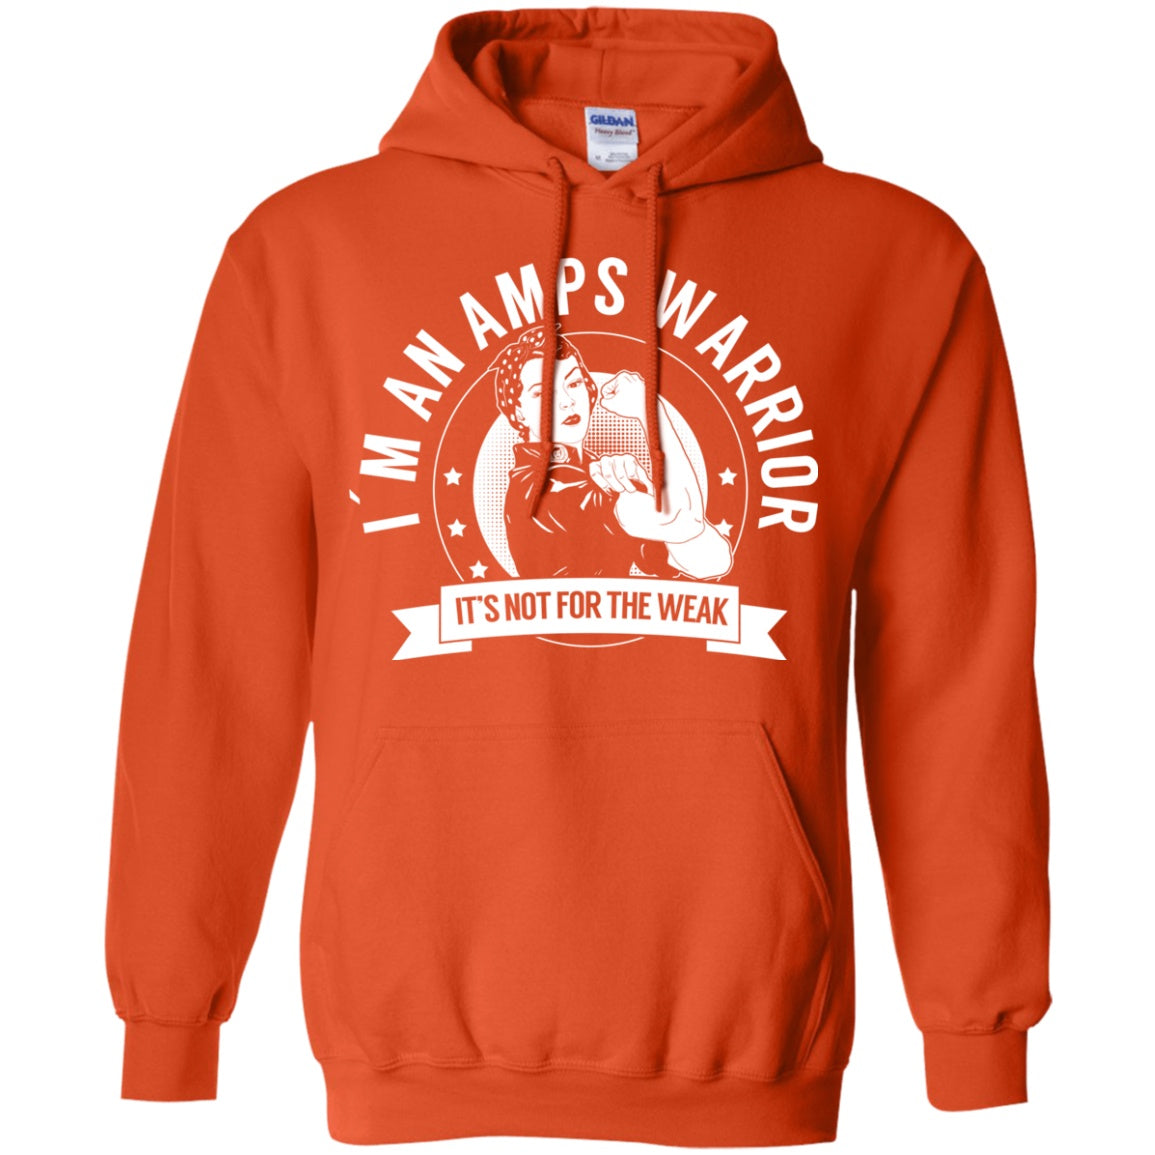 Sweatshirts - Amplified Musculoskeletal Pain Syndrome - AMPS Warrior NFTW Pullover Hoodie 8 Oz.